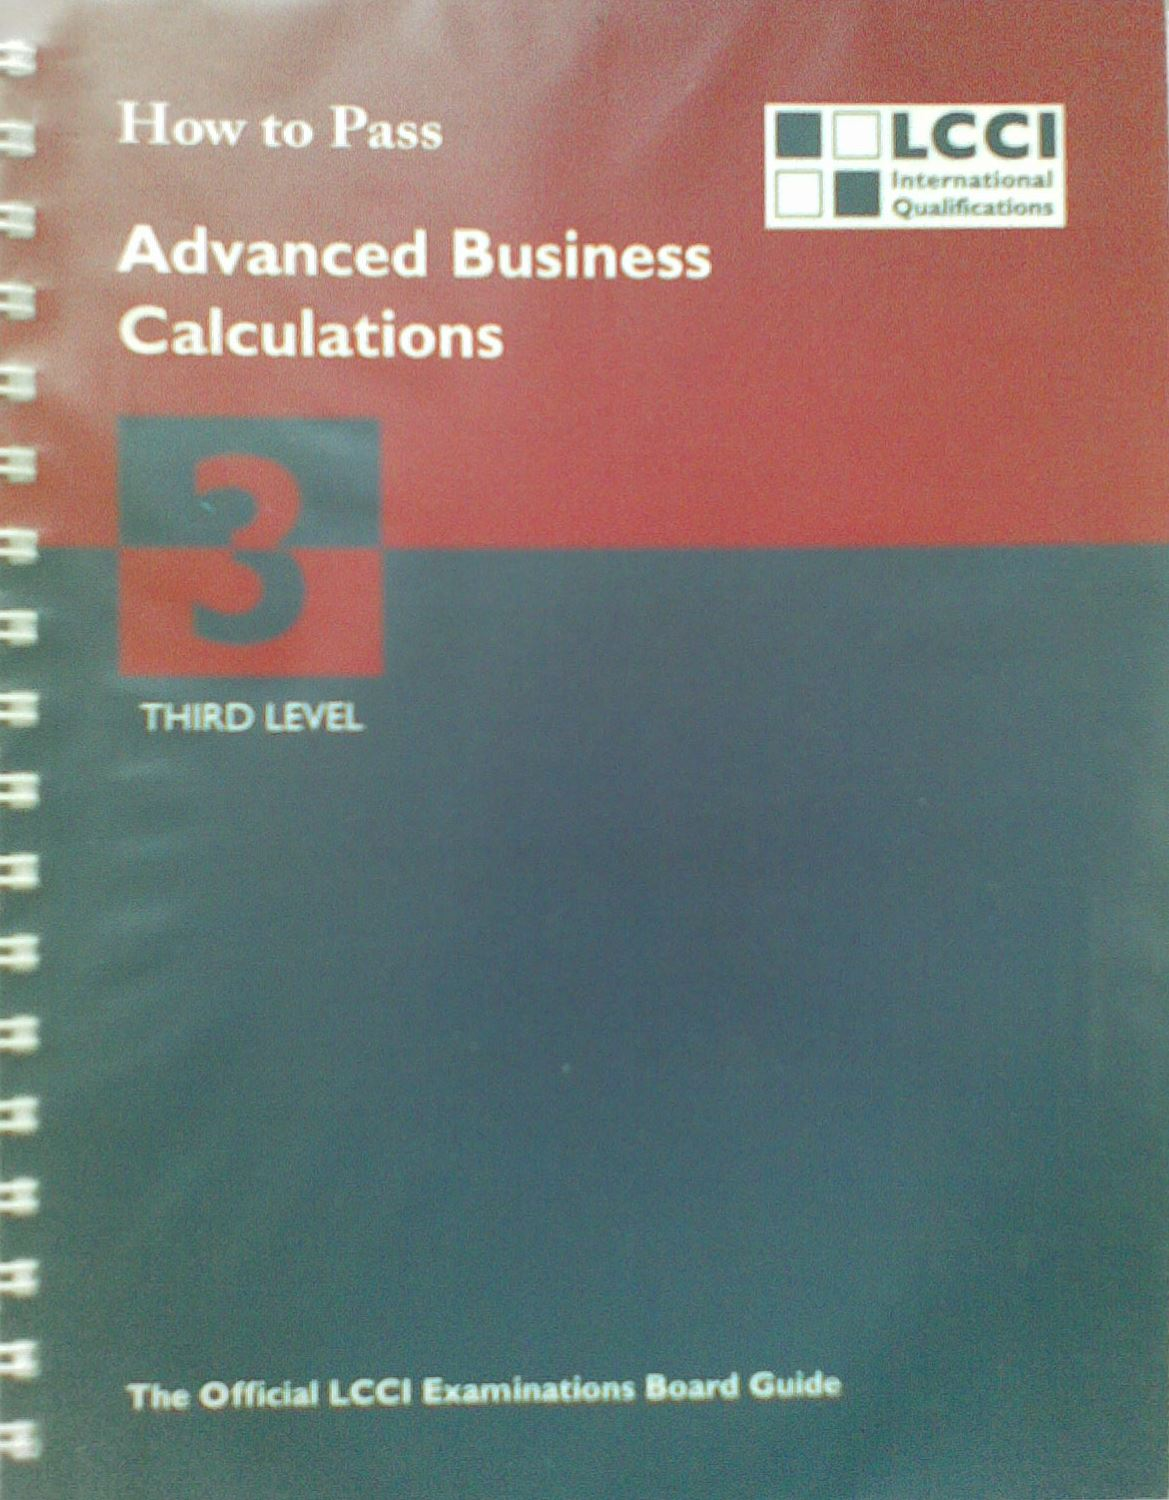 How to pass advanced business calculations